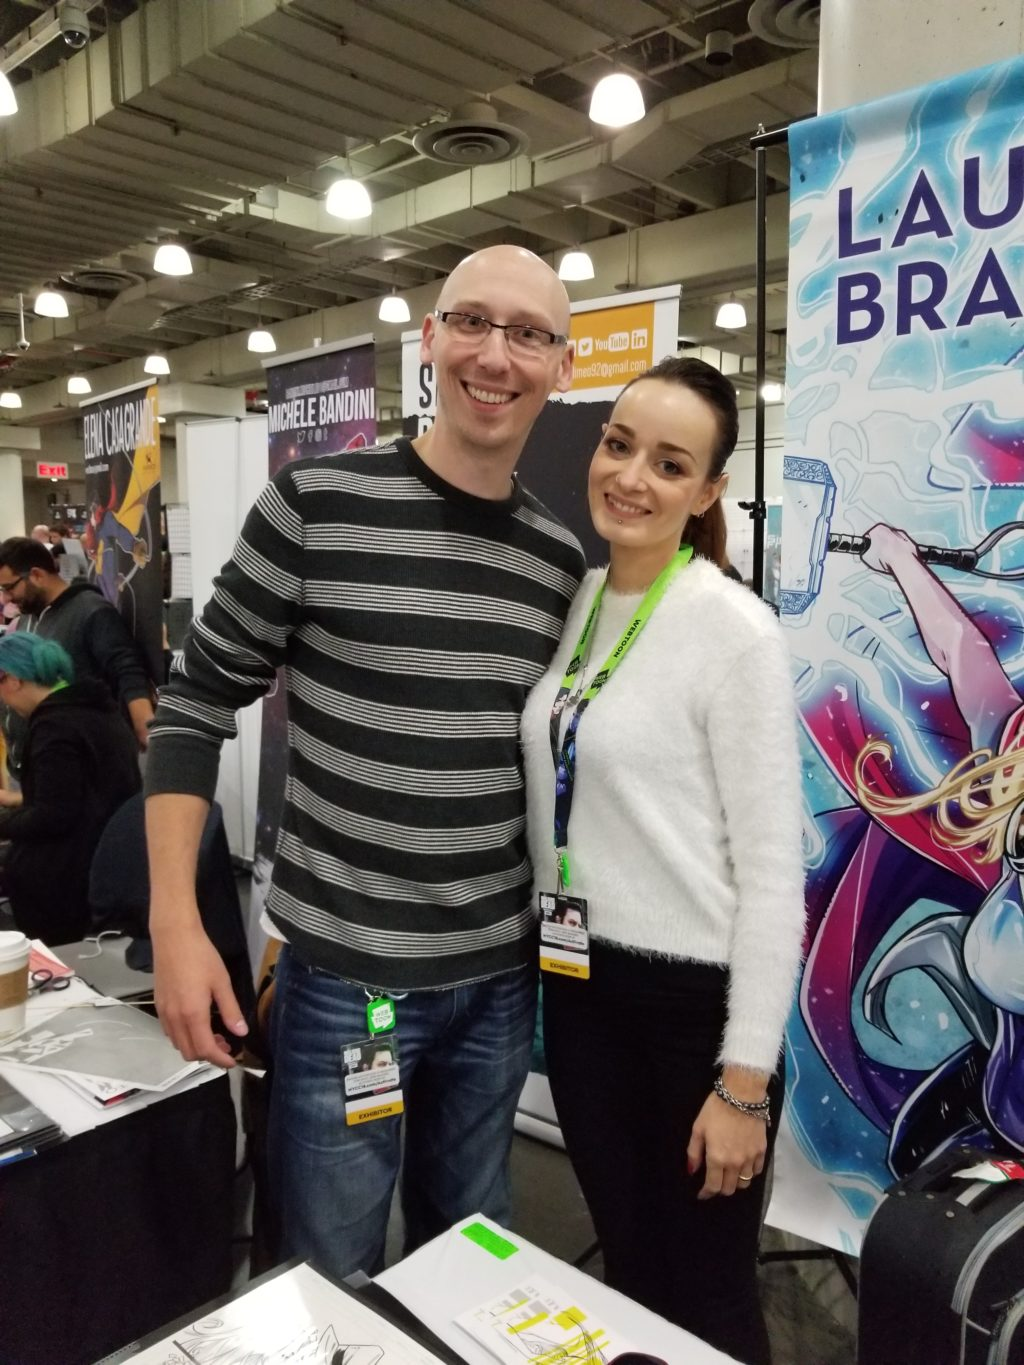 artist laura braga with trevor mueller at new york comic con 2018